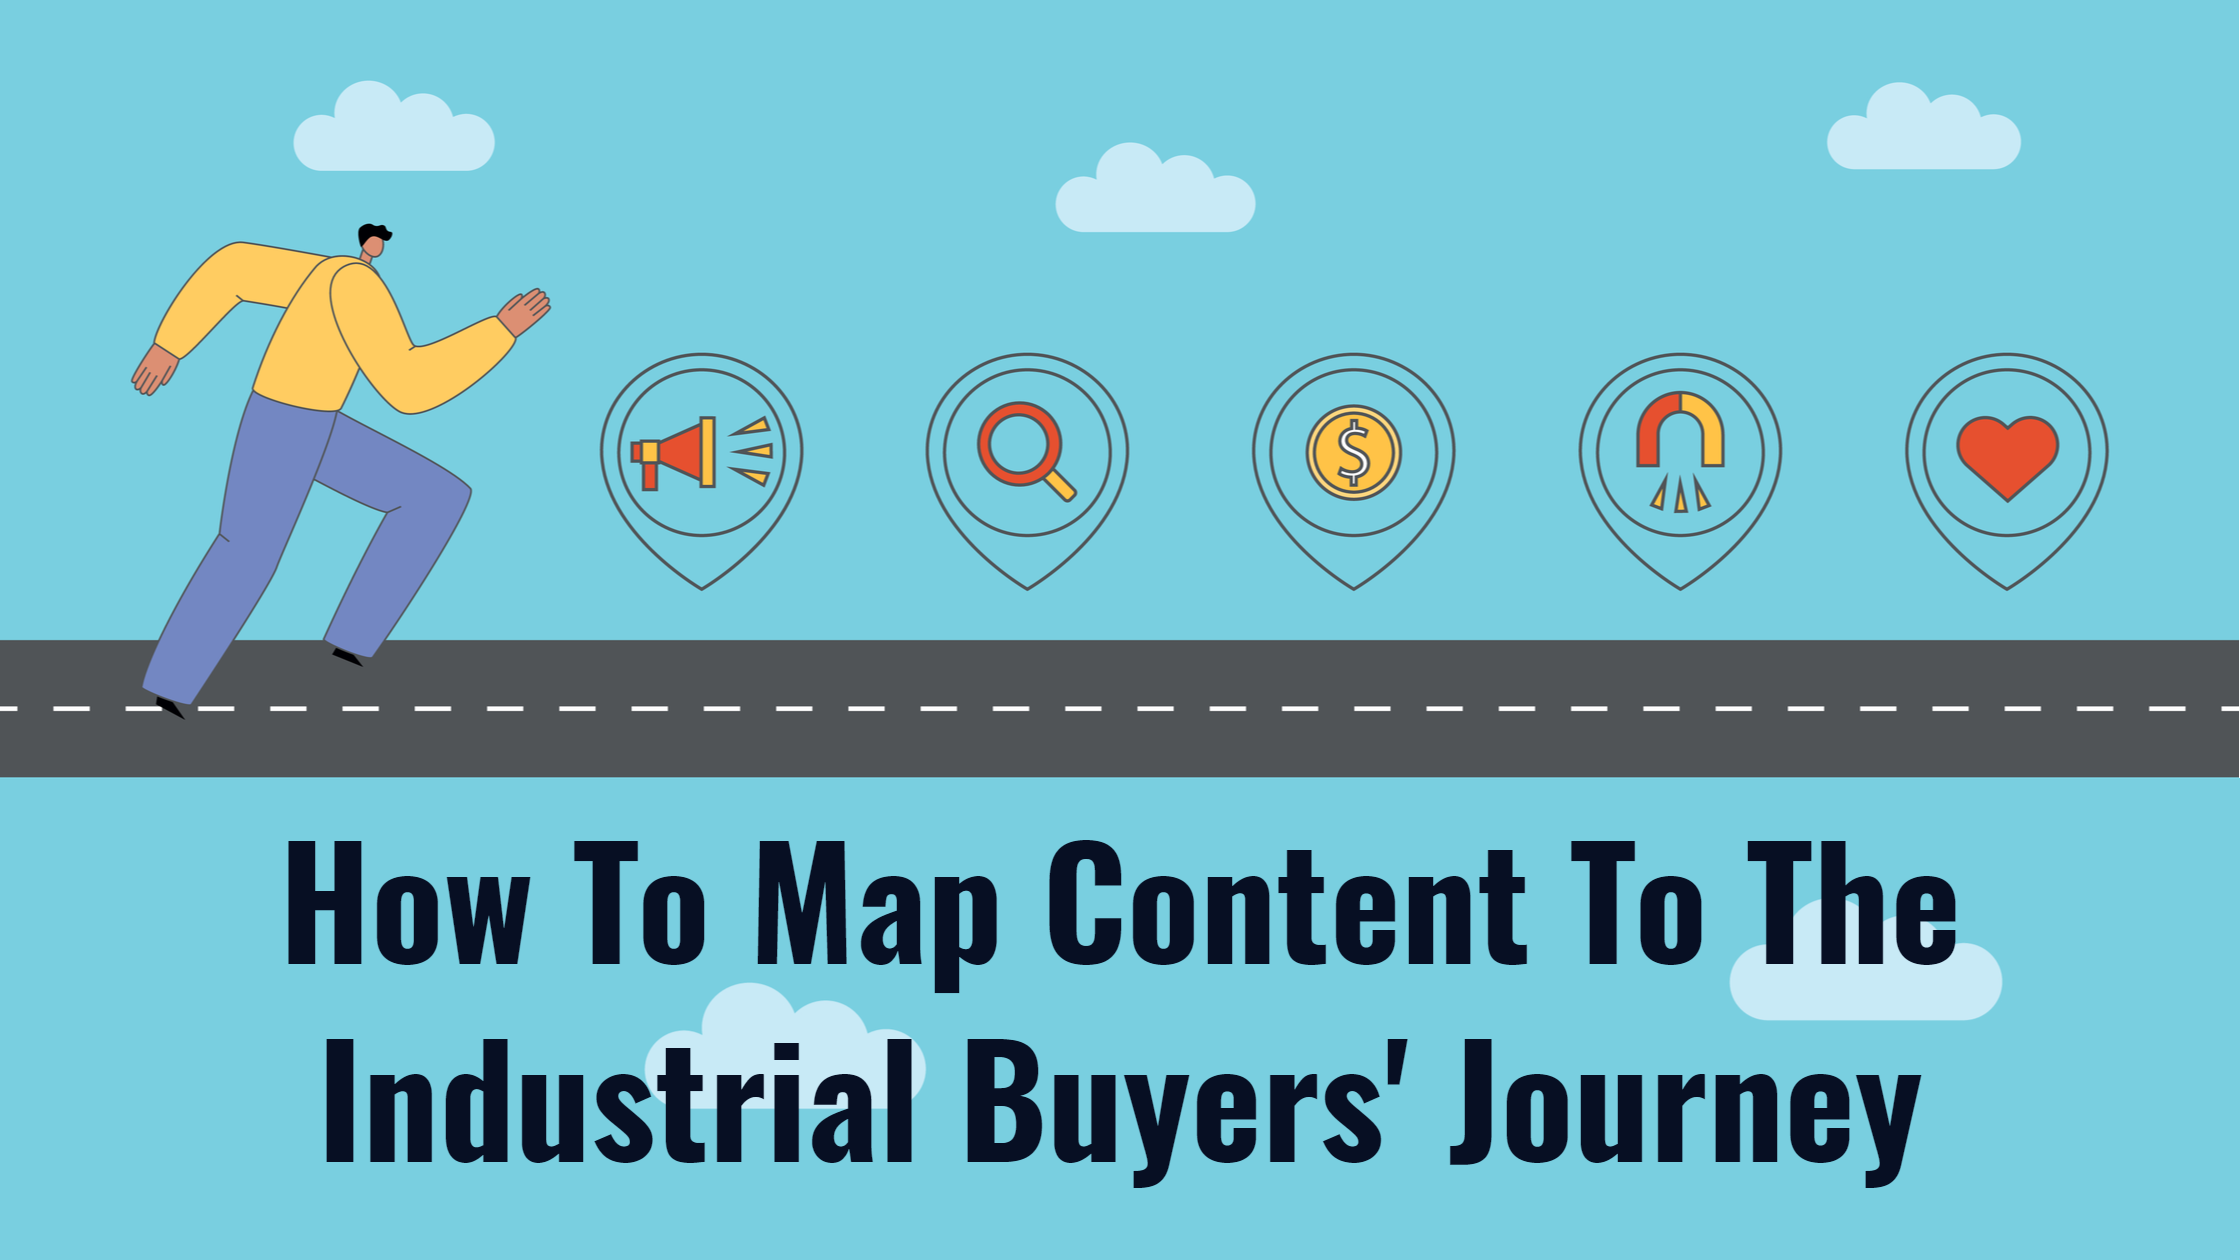 Mapping Content for Industrial Buyers' Journey